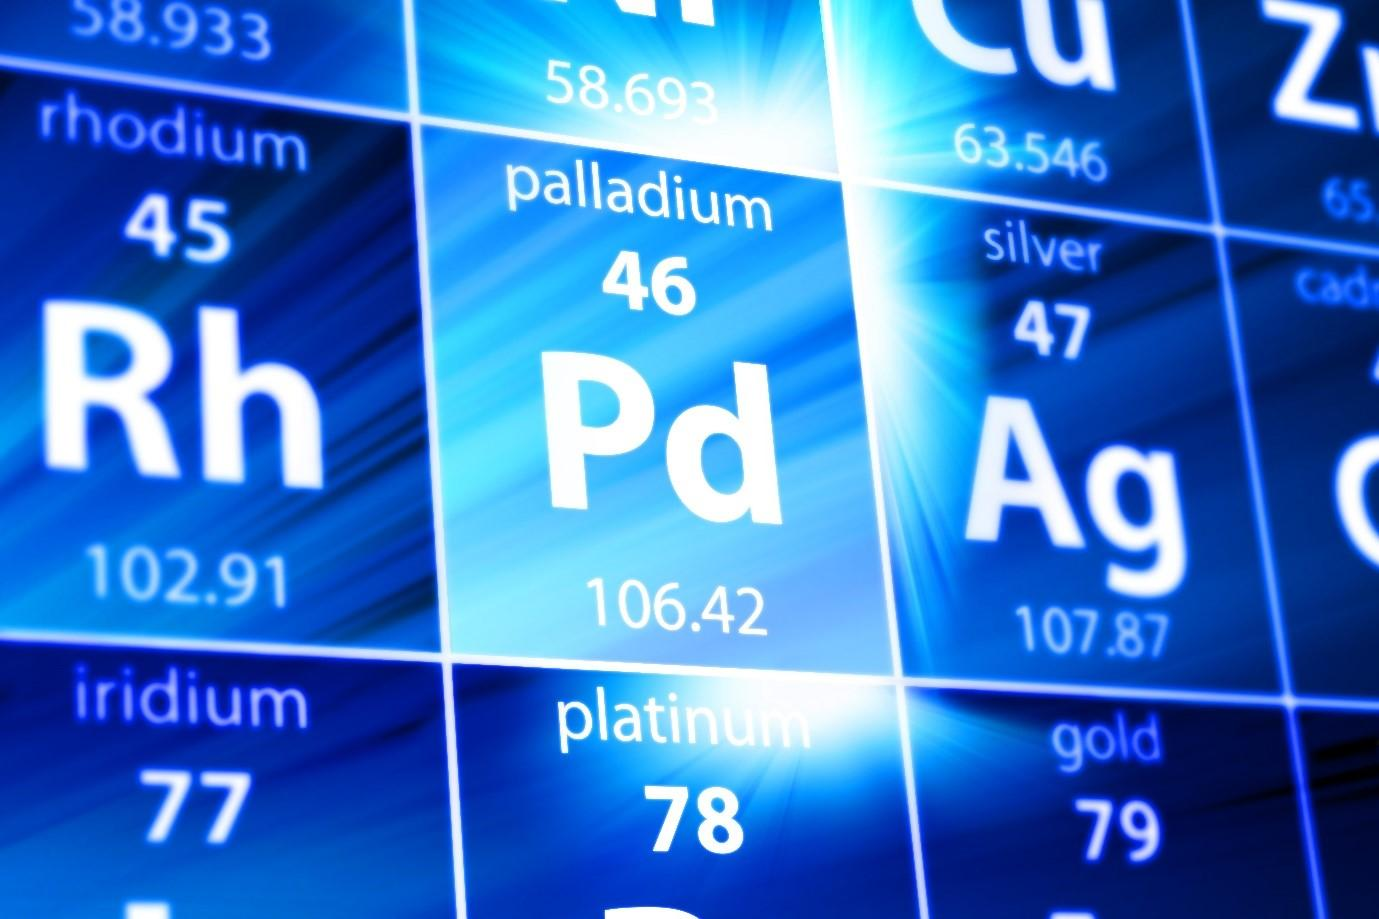 Palladium and Gold – the most precious of metals